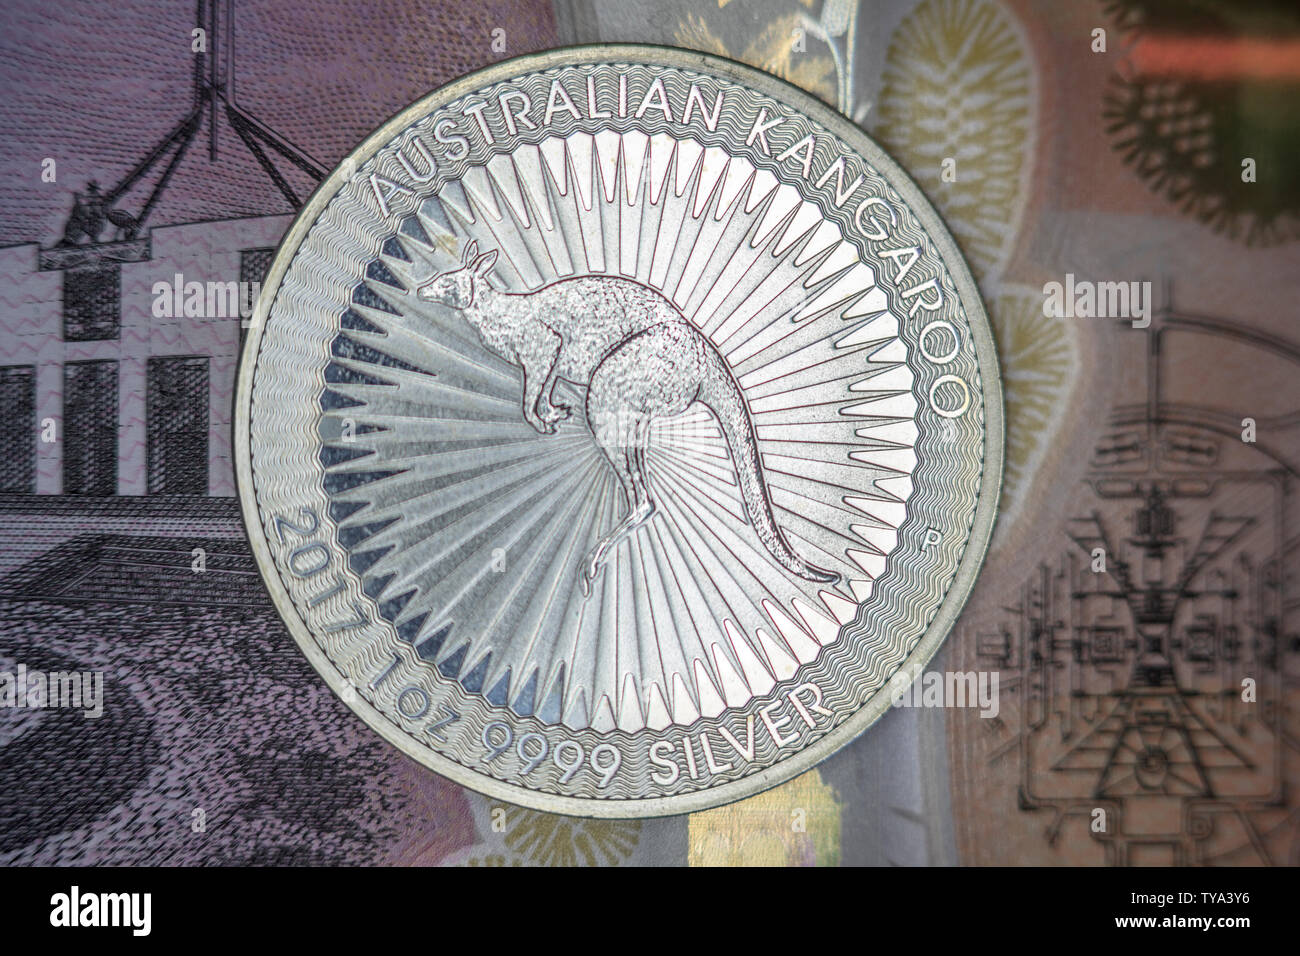 silver coin on banknote - Stock Image